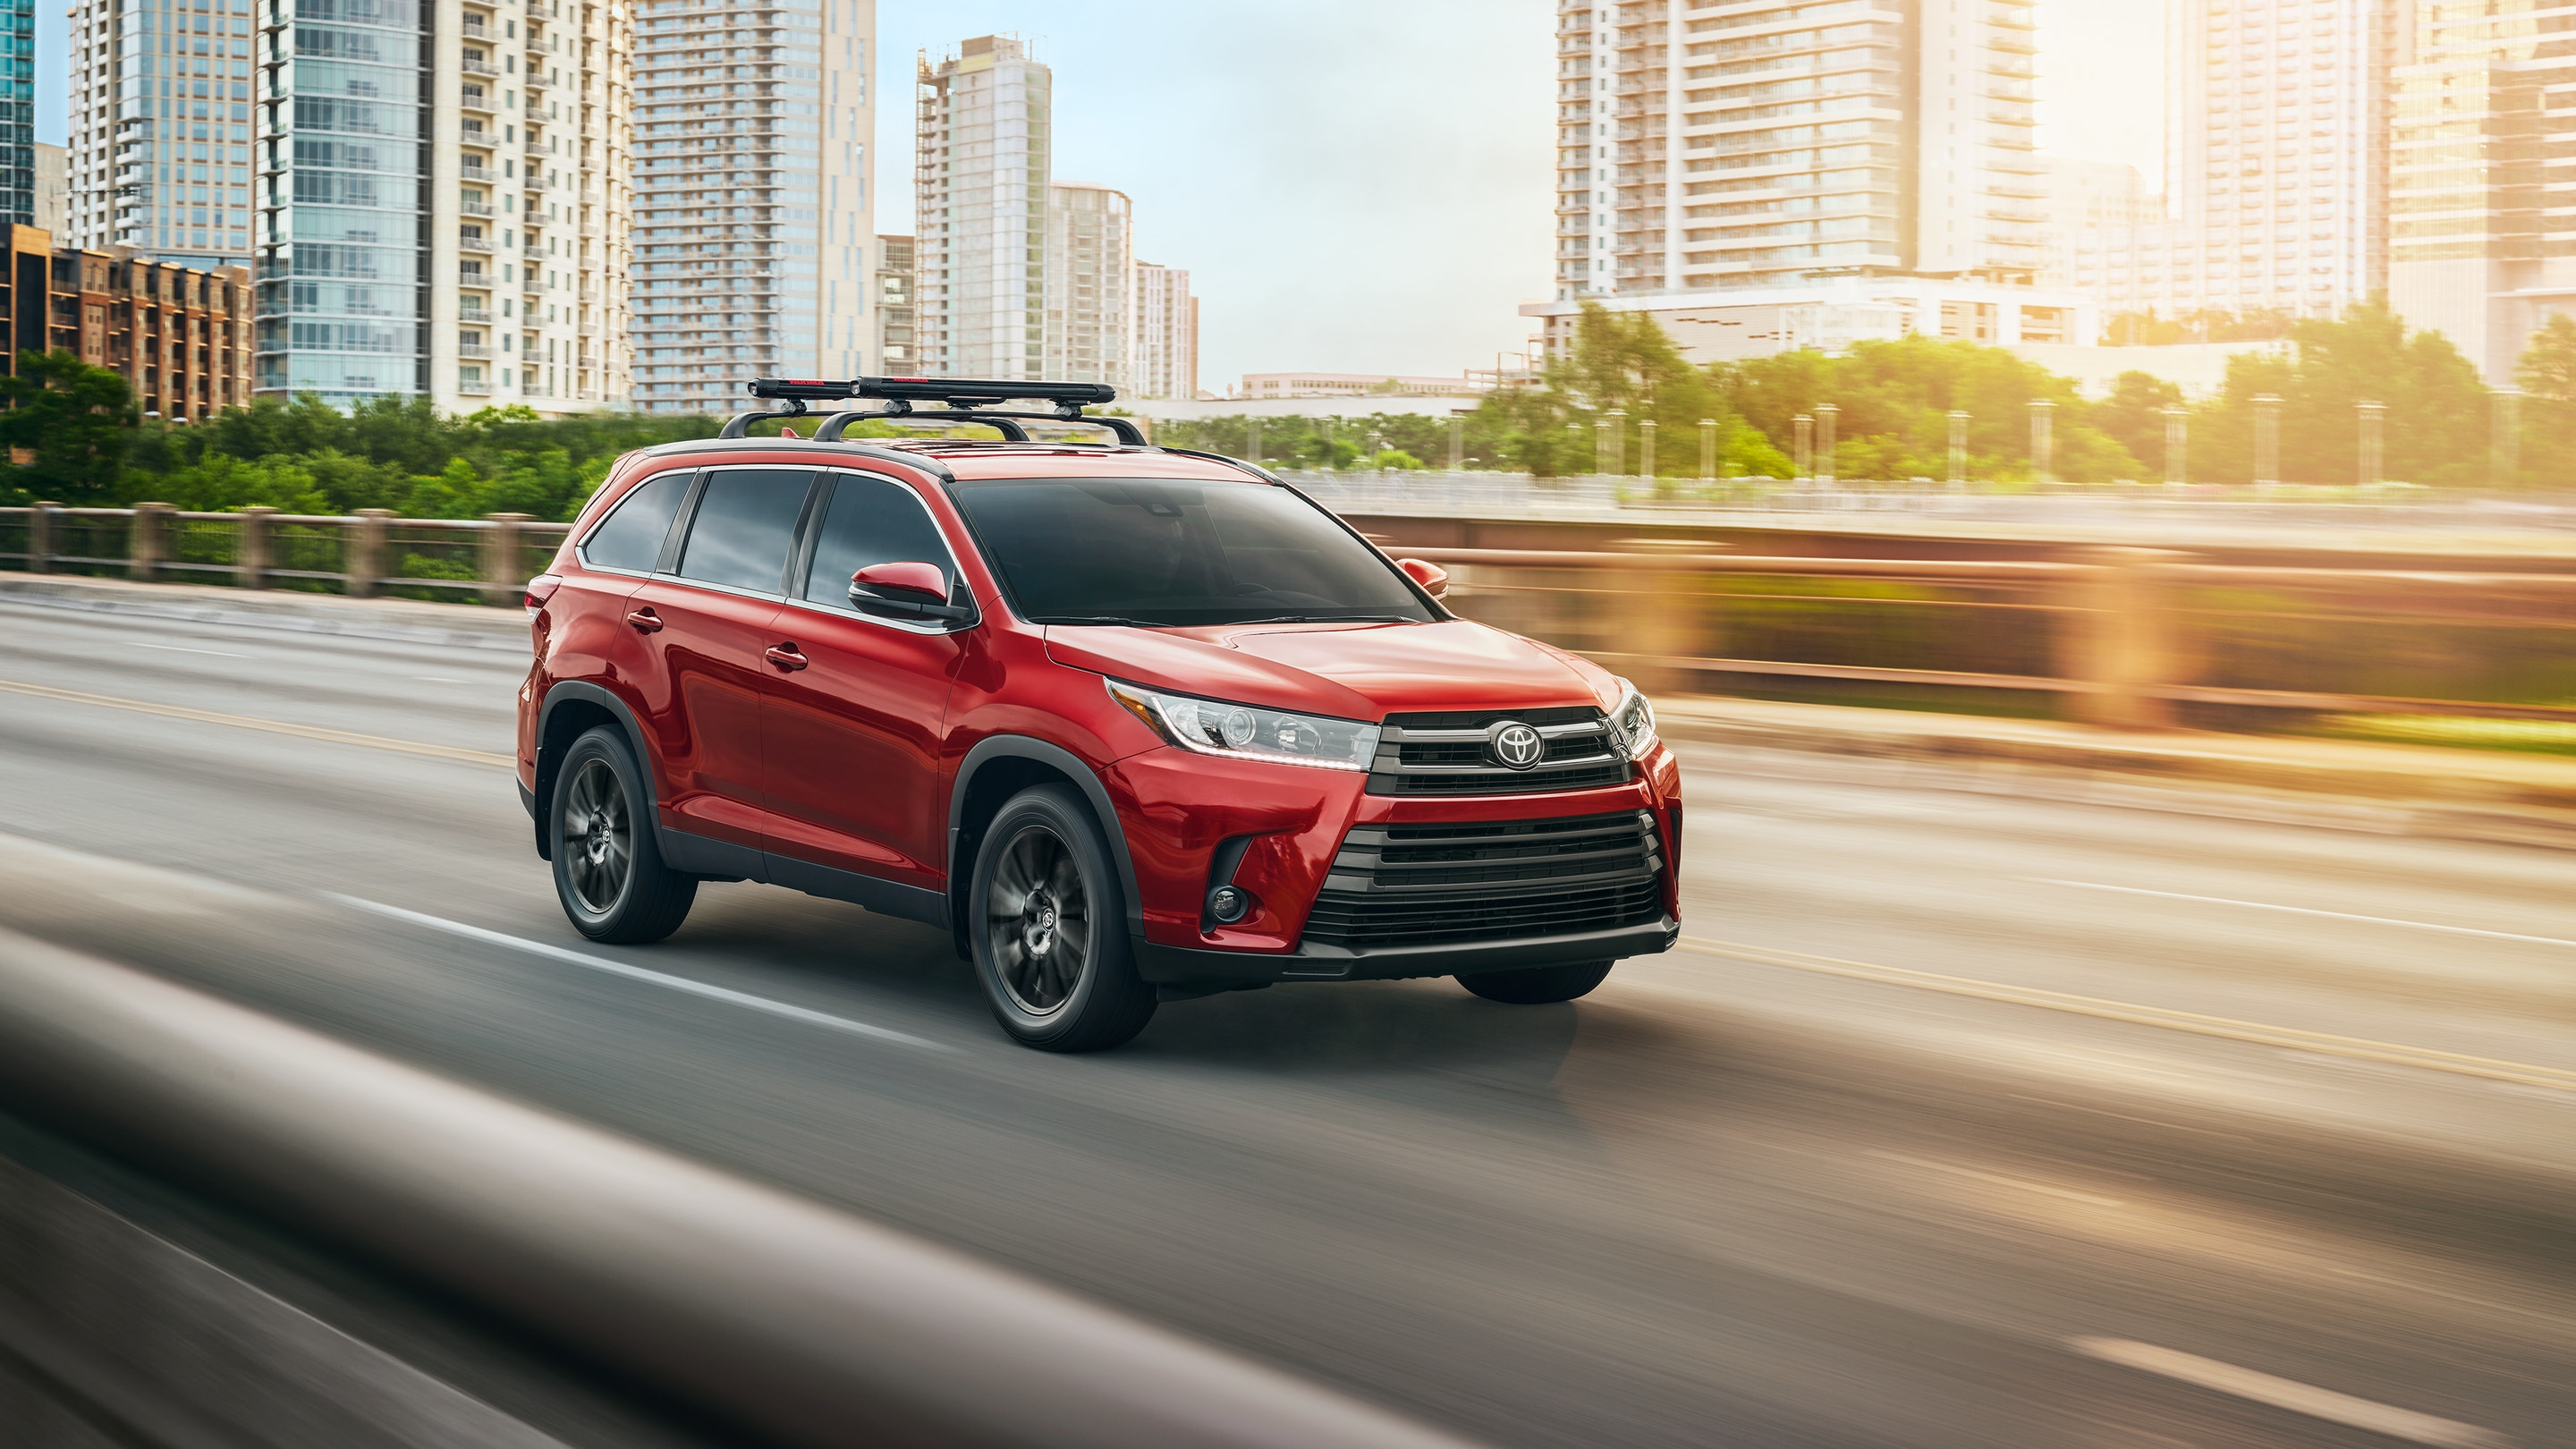 2019 Toyota Highlander for Sale near Bridgewater, NY